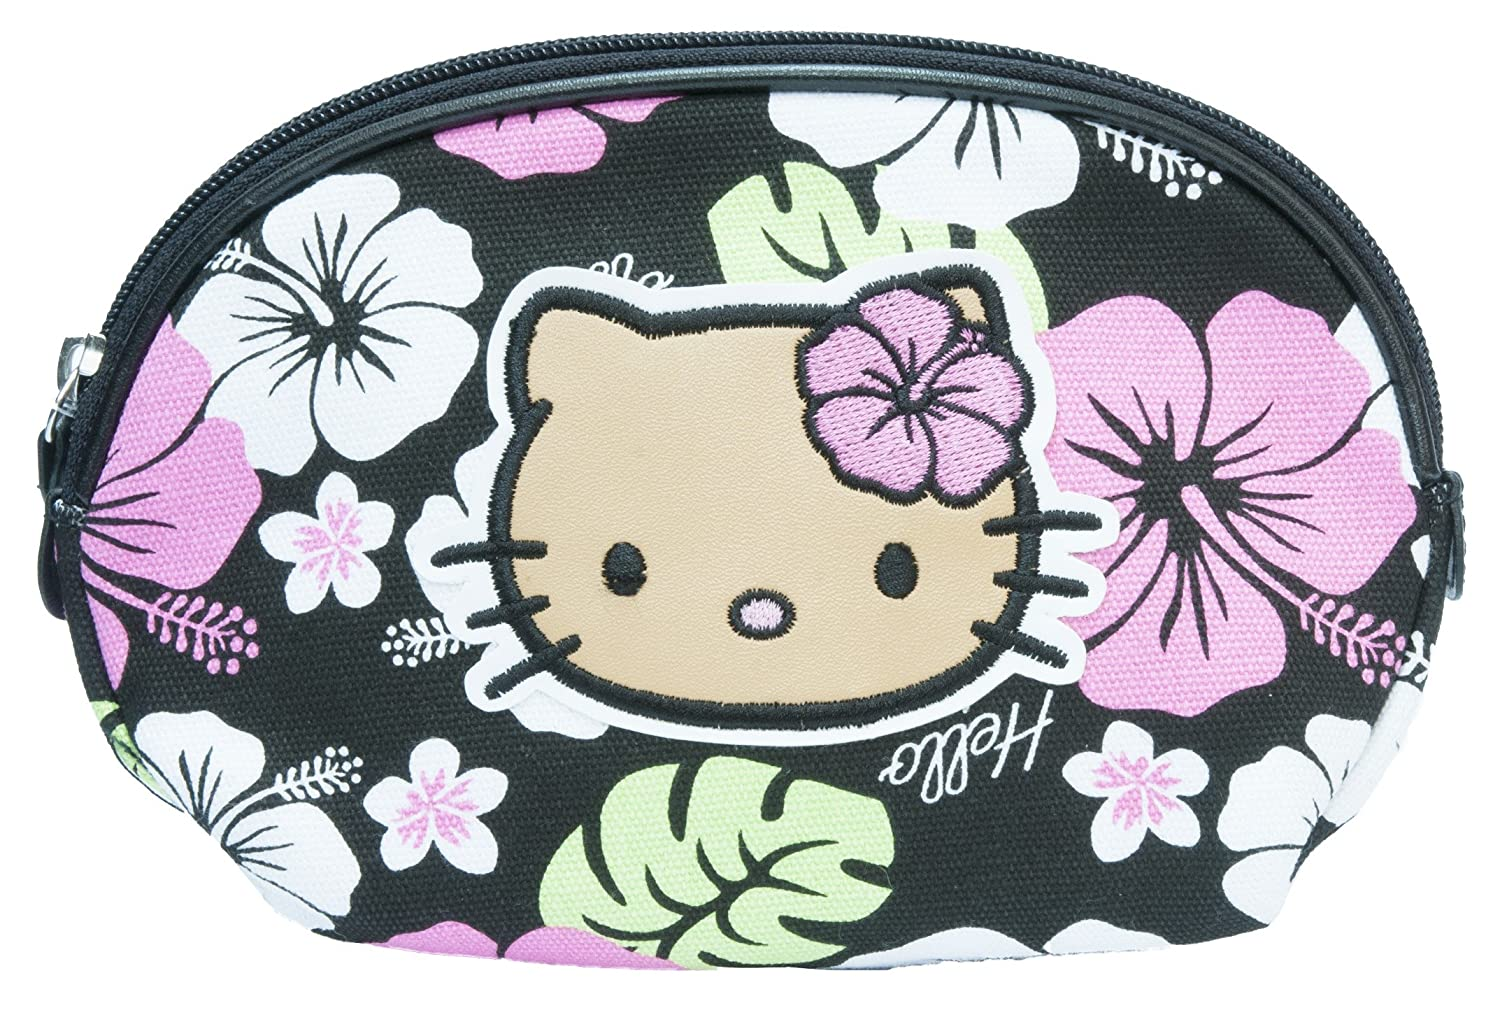 74bbb17a8f8d Official Sanrio Hello Kitty Hawaii beach flower girl make up bag case  travel purse toiletry bag  Amazon.co.uk  Clothing